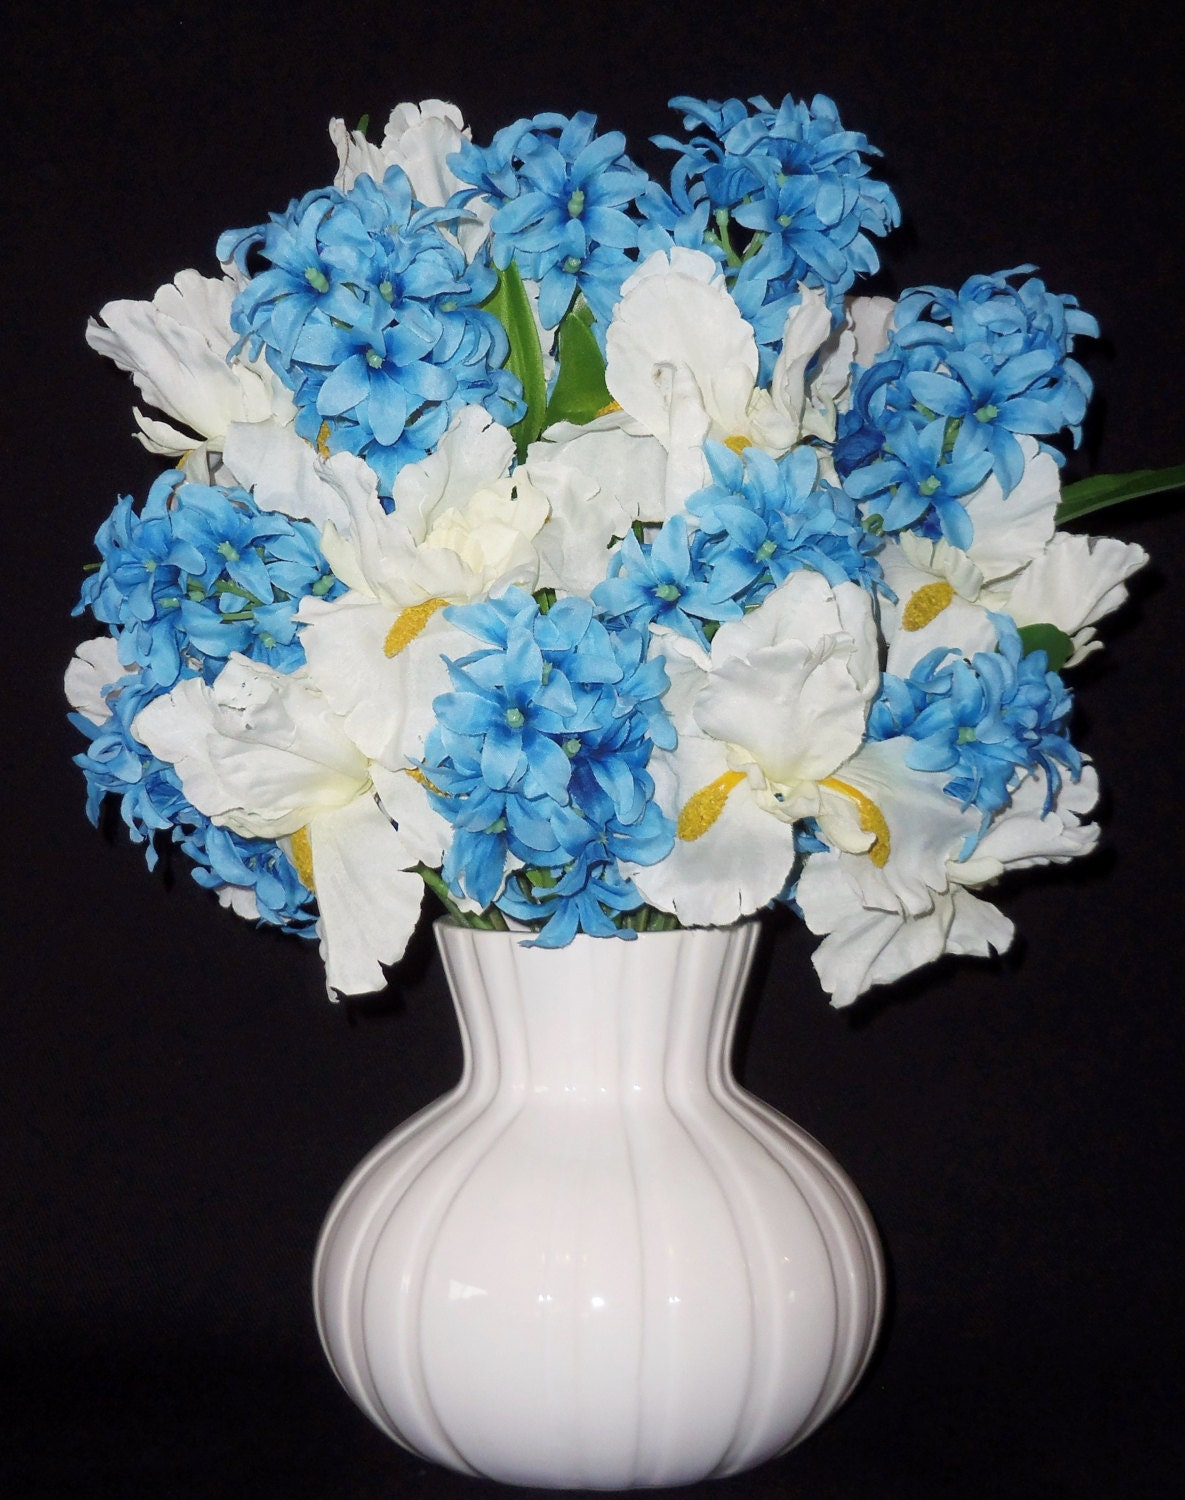 Silk Flower Arrangement Blue Hyacinth White Iris White